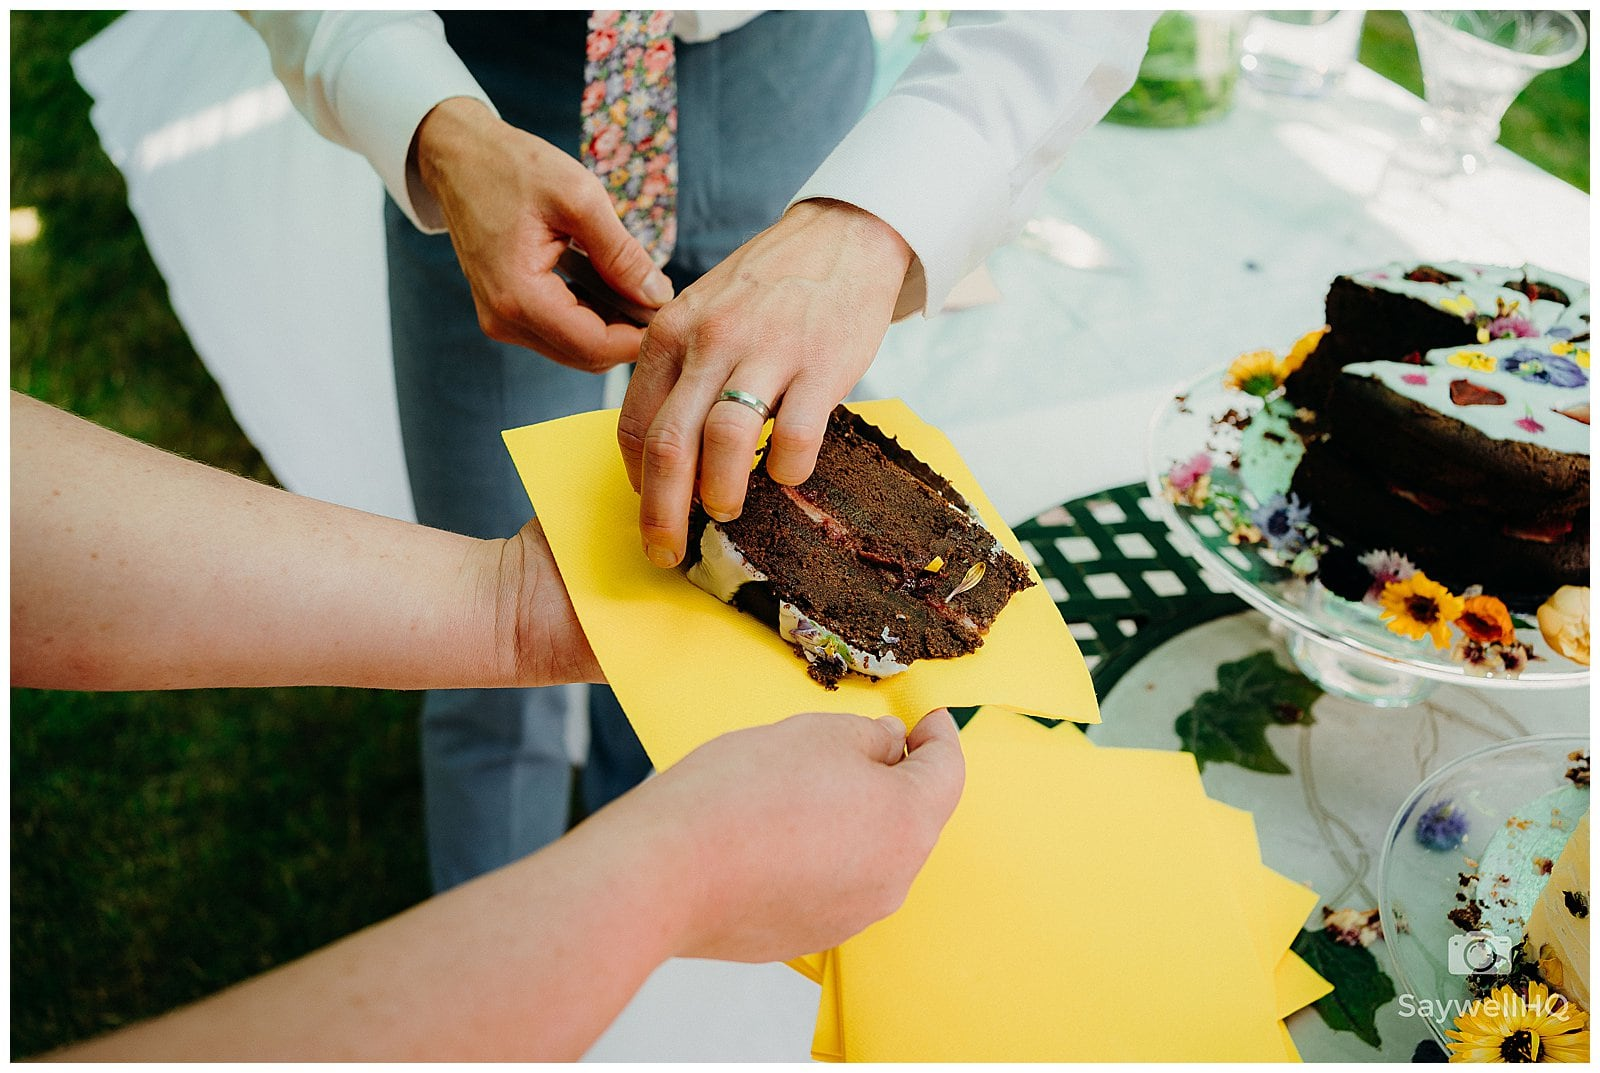 groom cuts off pieces of cake from the wedding cake and hands it to the guests